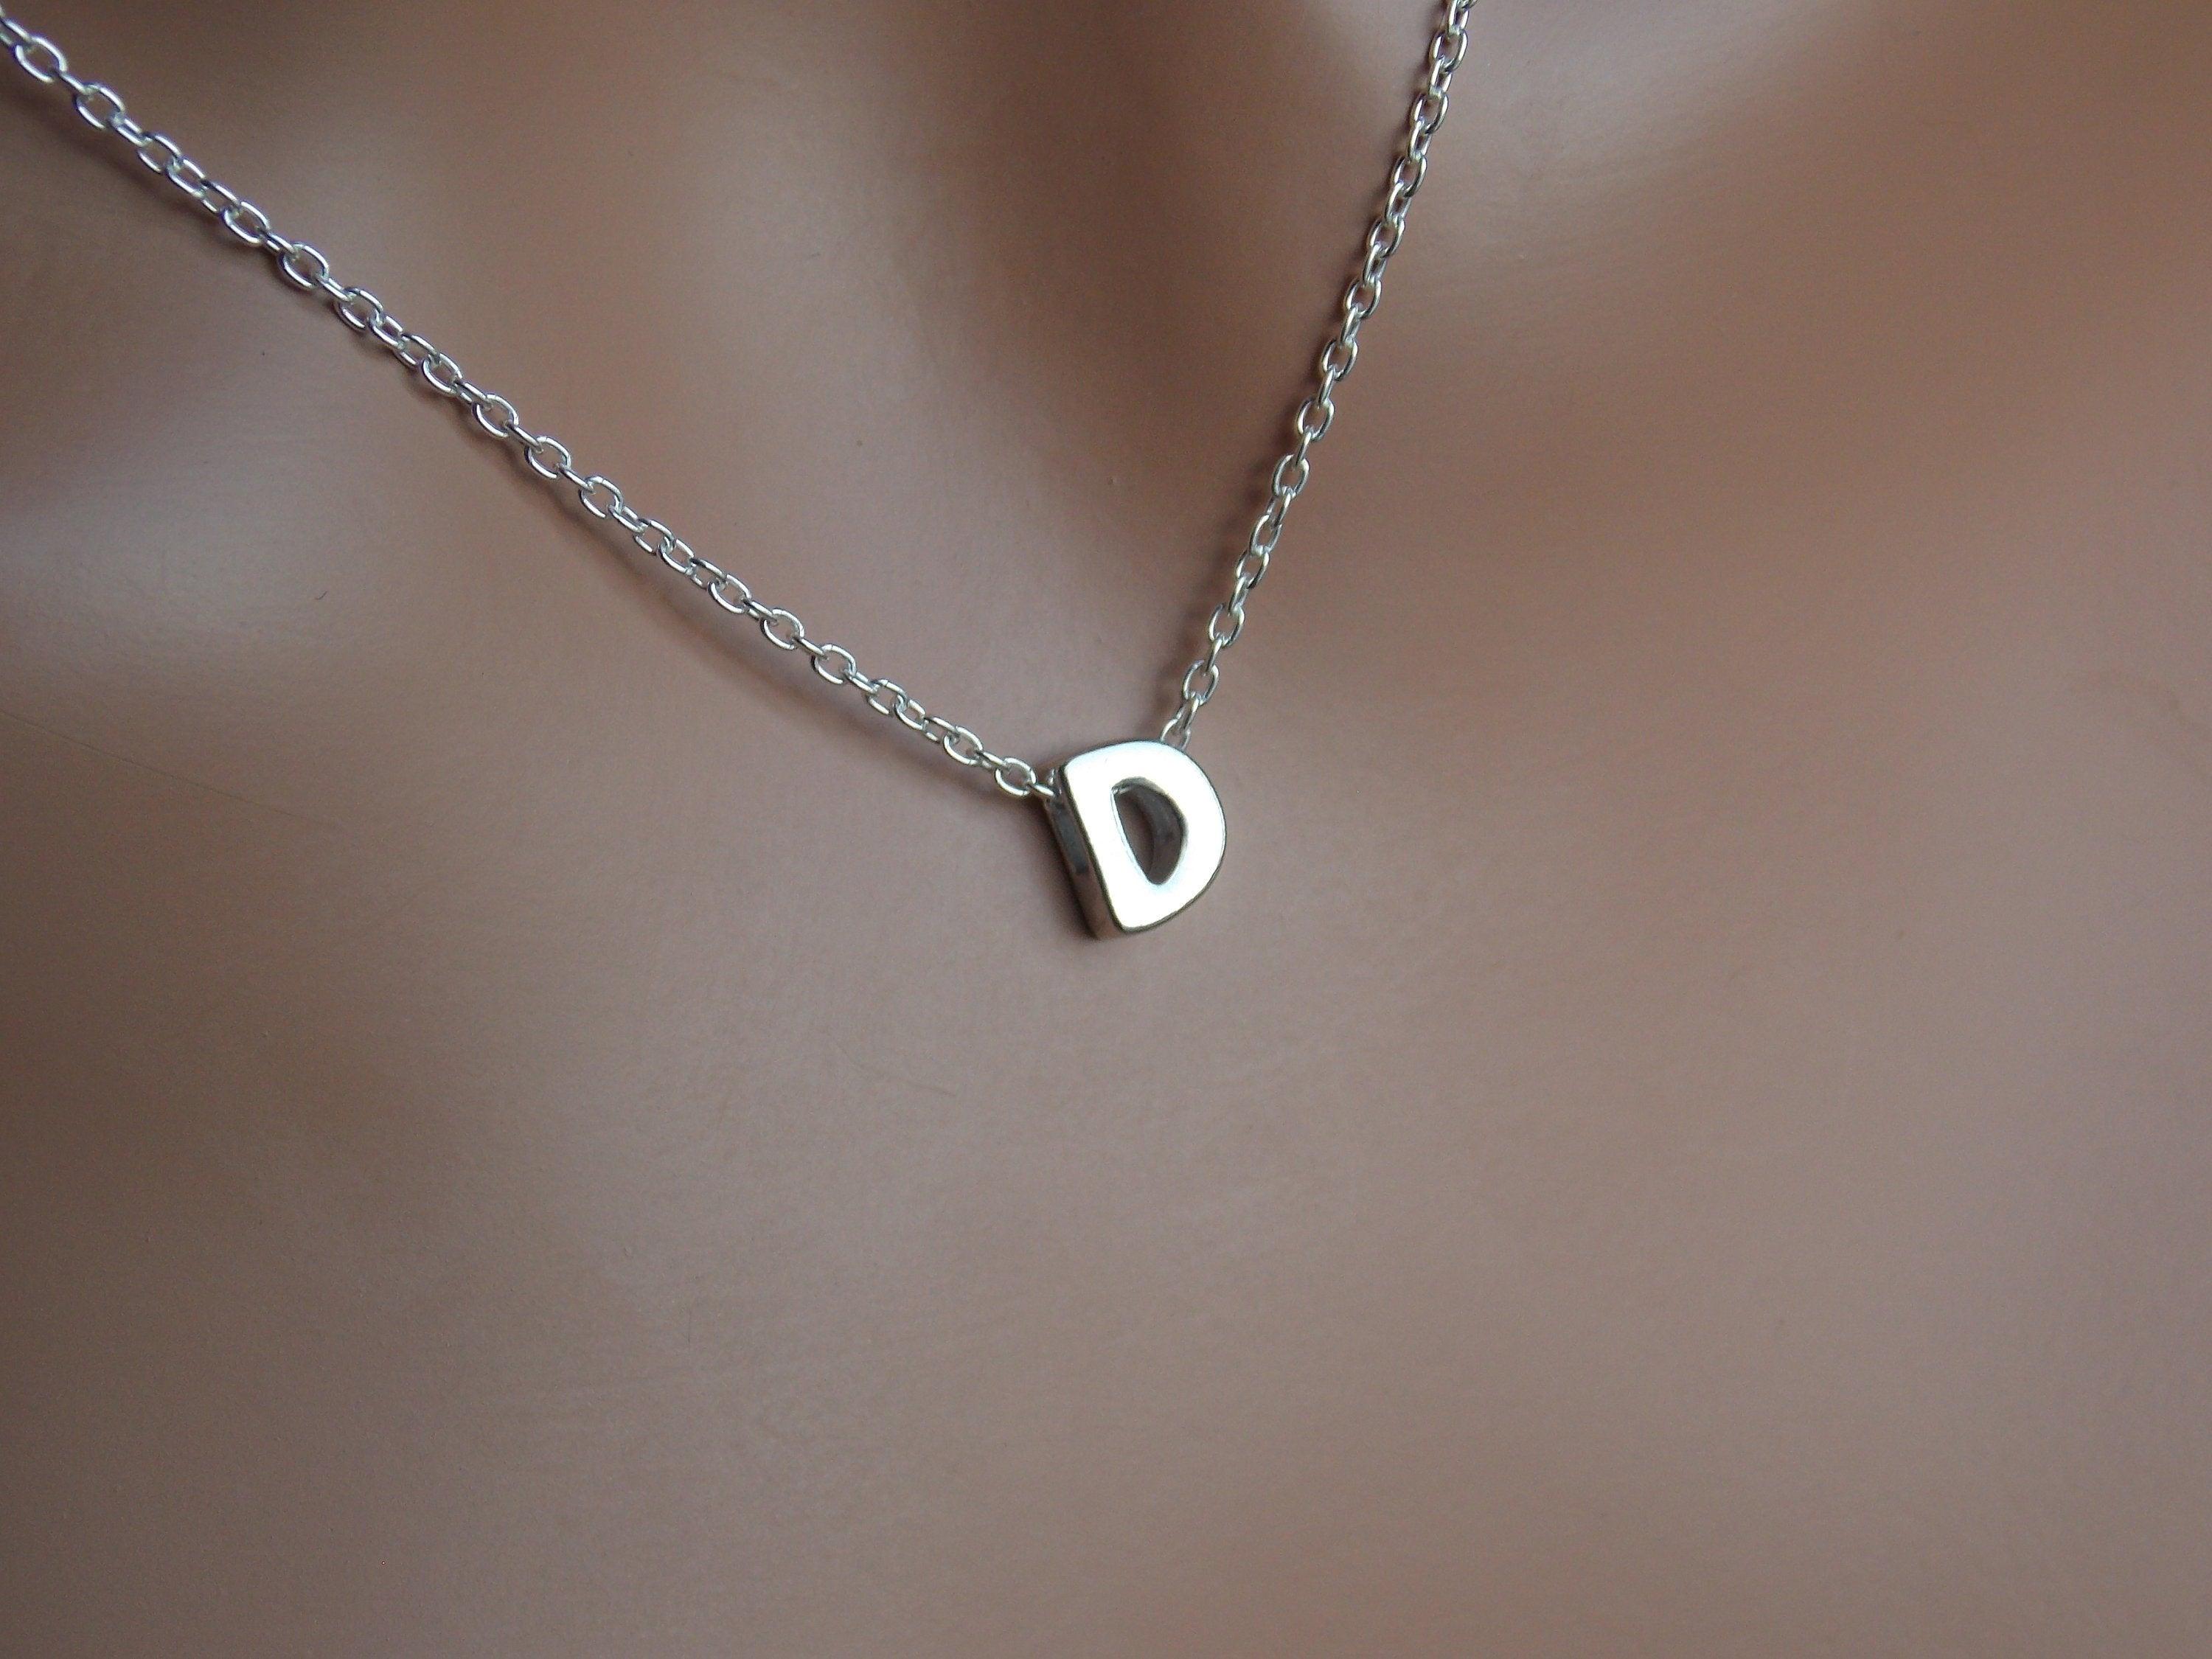 Initial D Necklace, Letter D, Letter D Necklace, Monogram D, Letter D Pendant, D Charm, D Jewelry, Alphabet, Sterling Silver D, Stampsink Throughout Most Recent Letter E Alphabet Locket Element Necklaces (View 9 of 25)